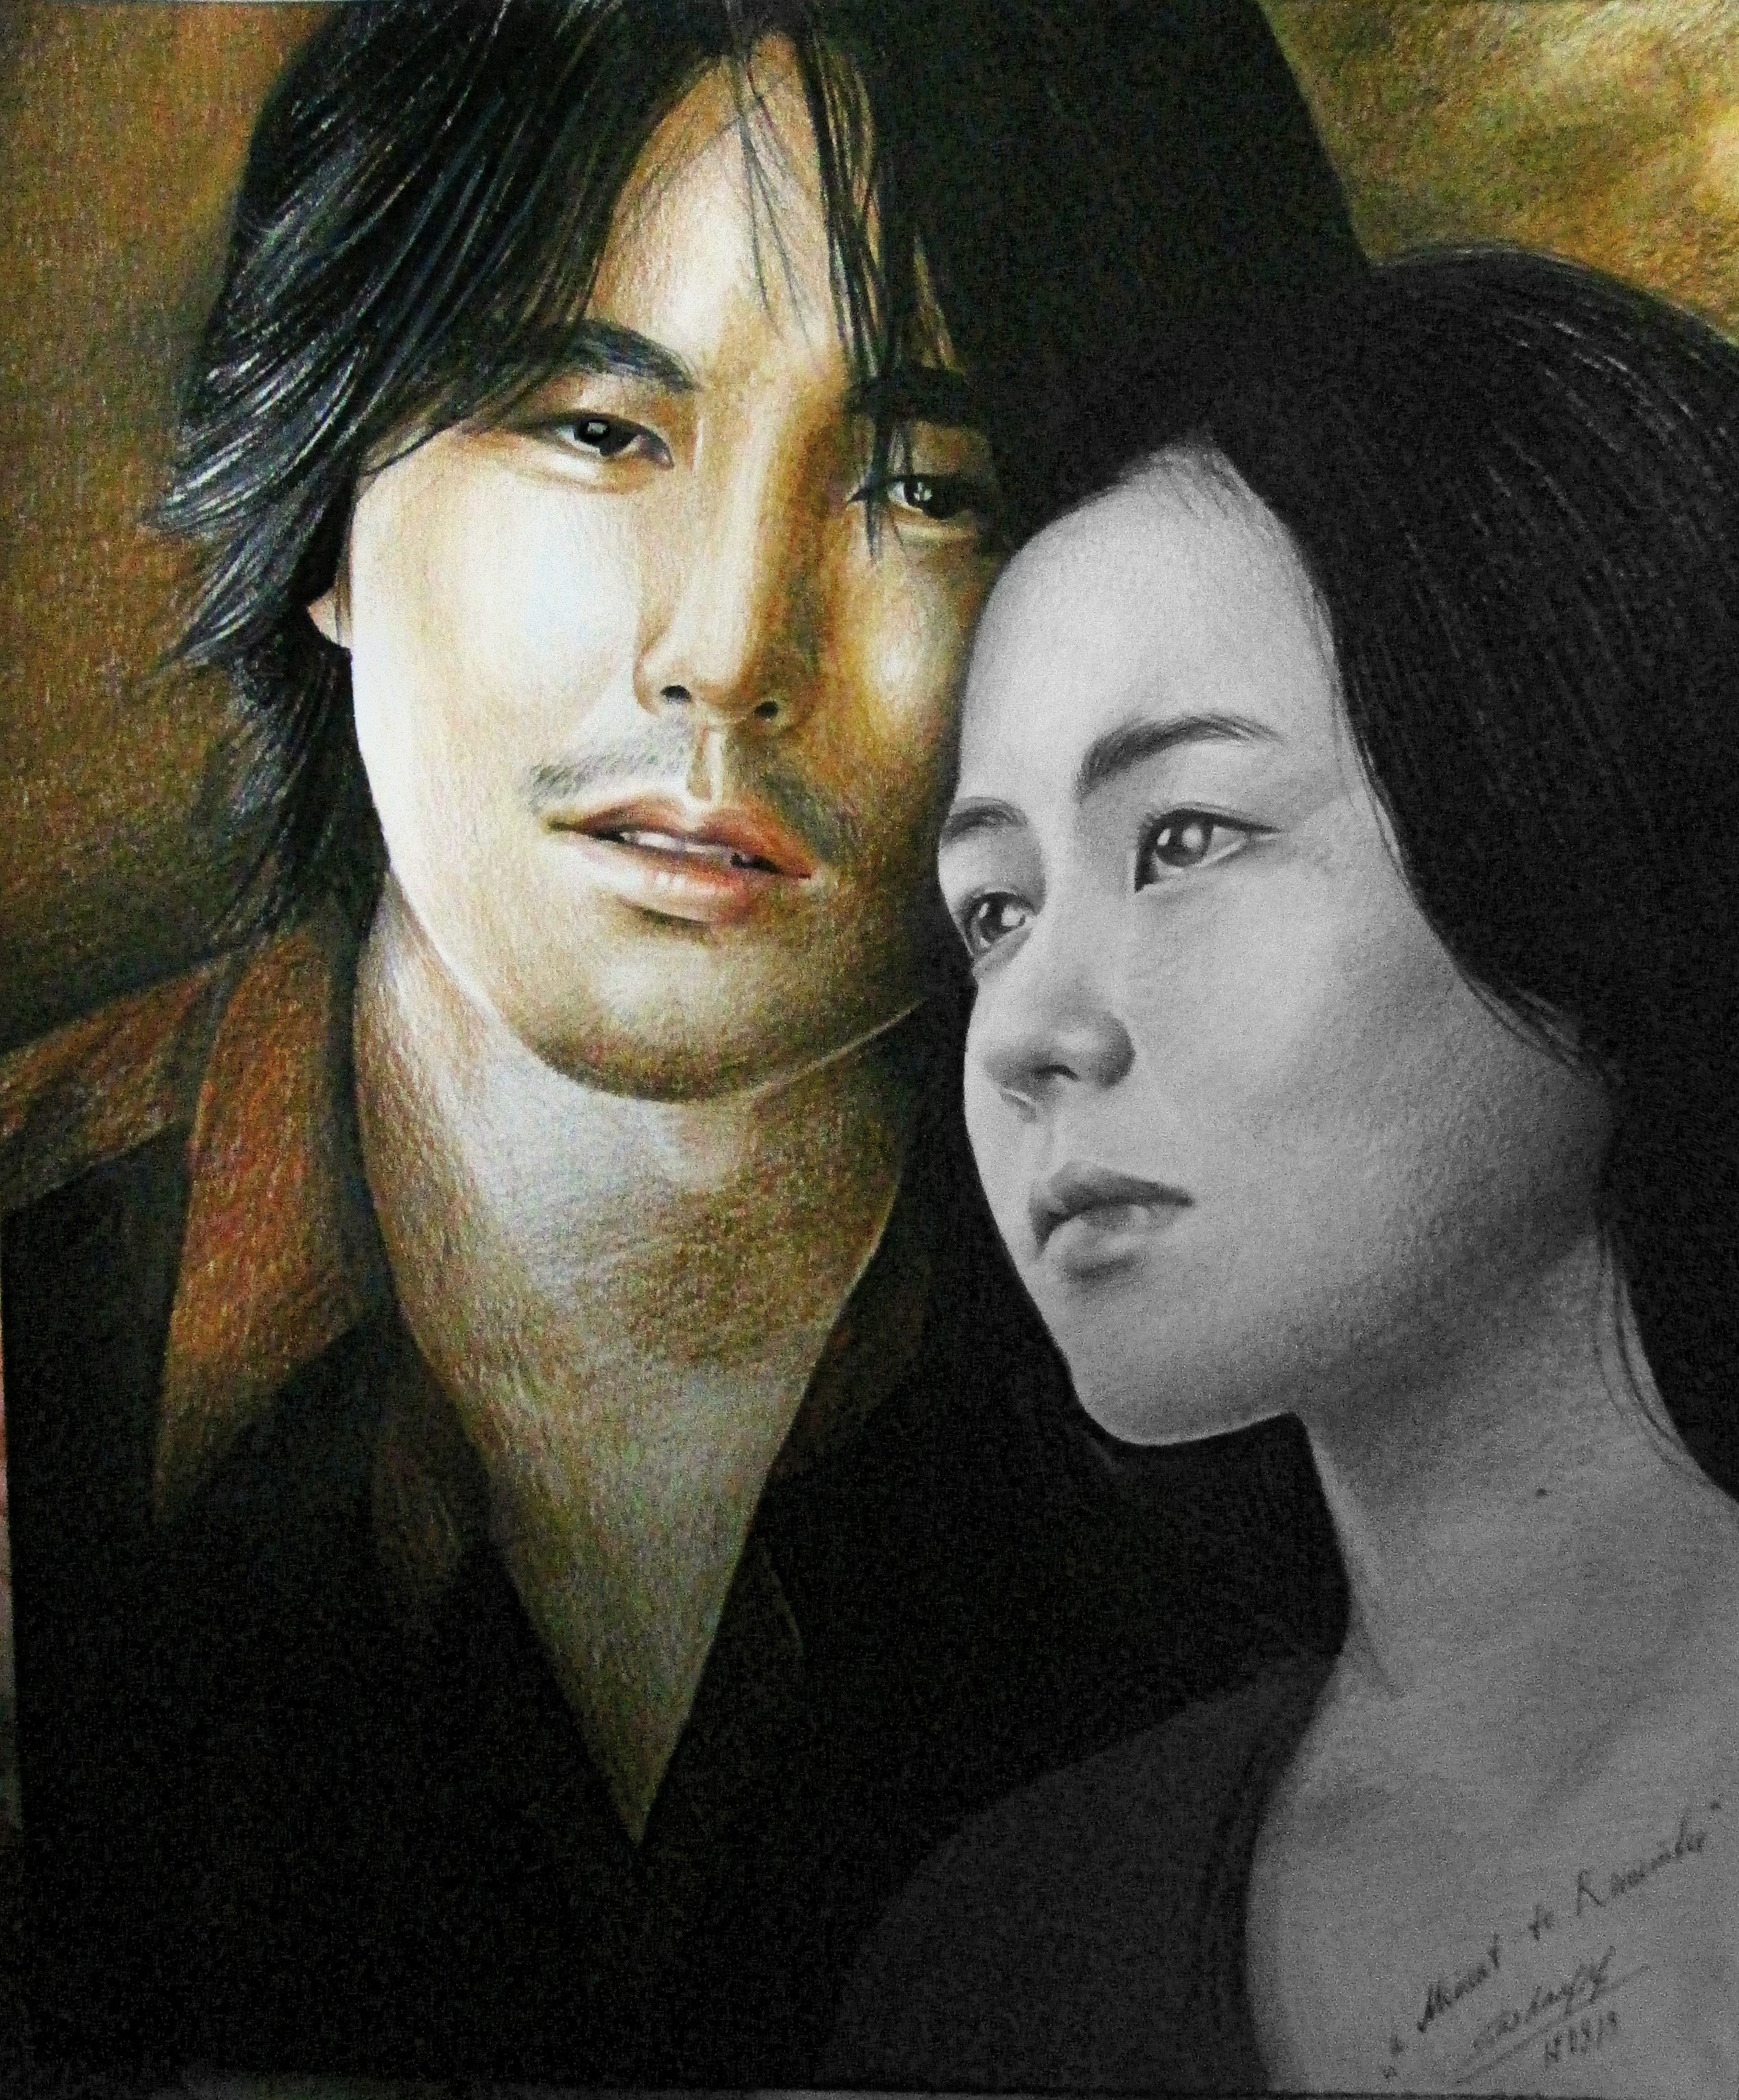 A Moment To Remember Jung Woo Sung Son Ye-jin By Sasha-pak